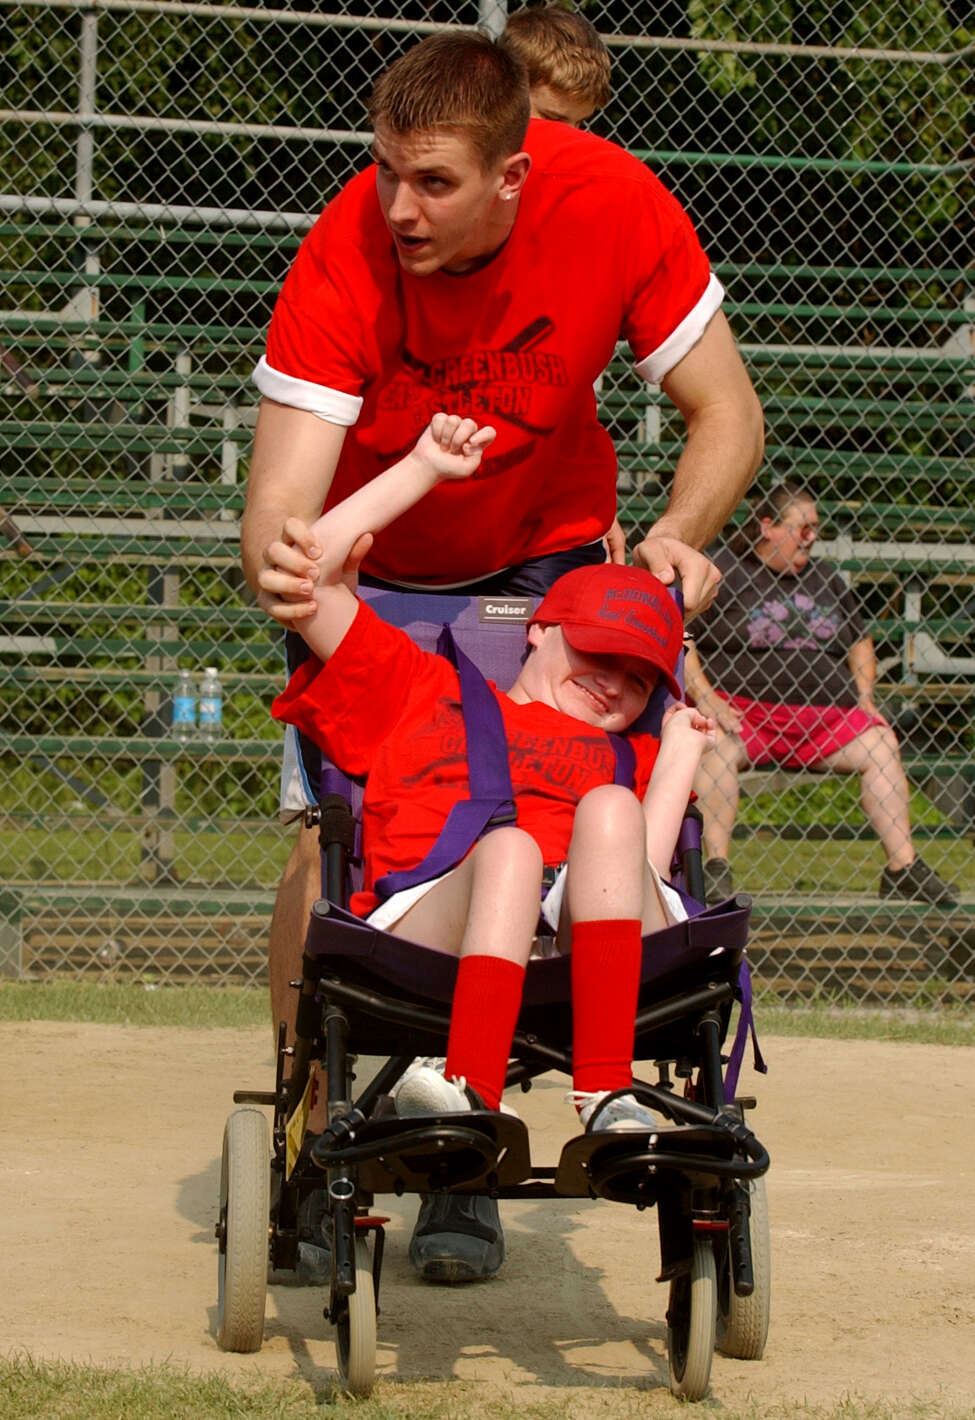 Craig Forth, a former Columbia High basketball star and now a sophomore player at Syracuse University, takes the arm of Jaime Adams as they wave to the crowd after passing home plate at the East Greenbush Little League Field on Monday July 1, 2002, in East Greenbush, N.Y. Forth volunteers his time in a program to help physically challenged children play baseball. (Will Waldron/Times Union)